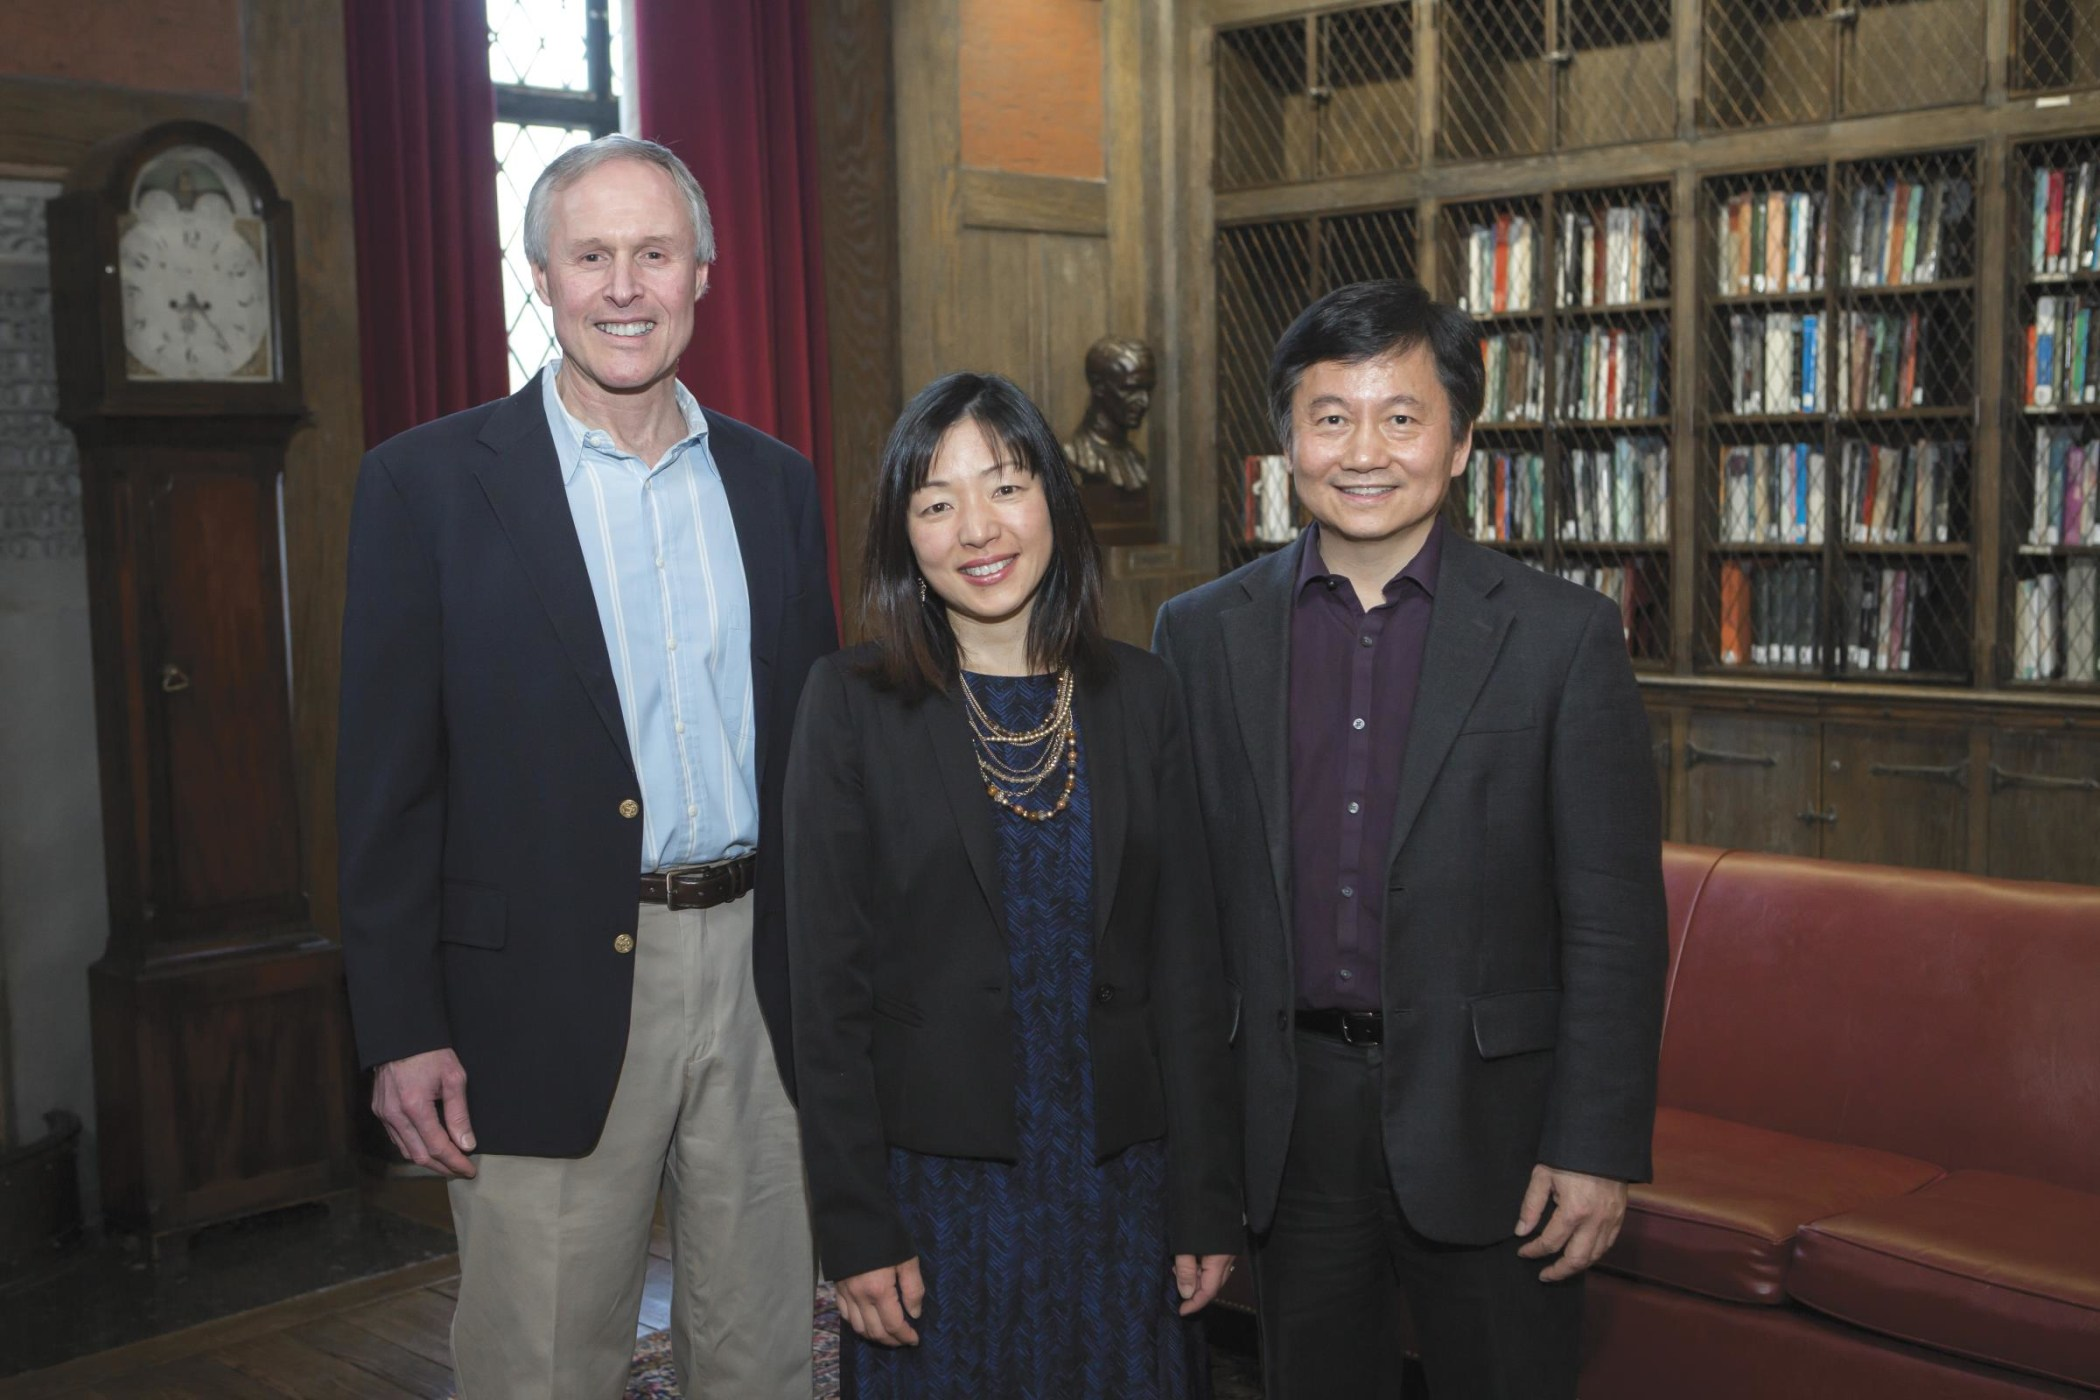 (l–r): David Schatz, Akiko Iwasaki, and Haifan Lin (and Günter Wagner, not pictured), are School of Medicine researchers elected to the National Academy of Sciences, one of the highest honors that a scientist can receive.